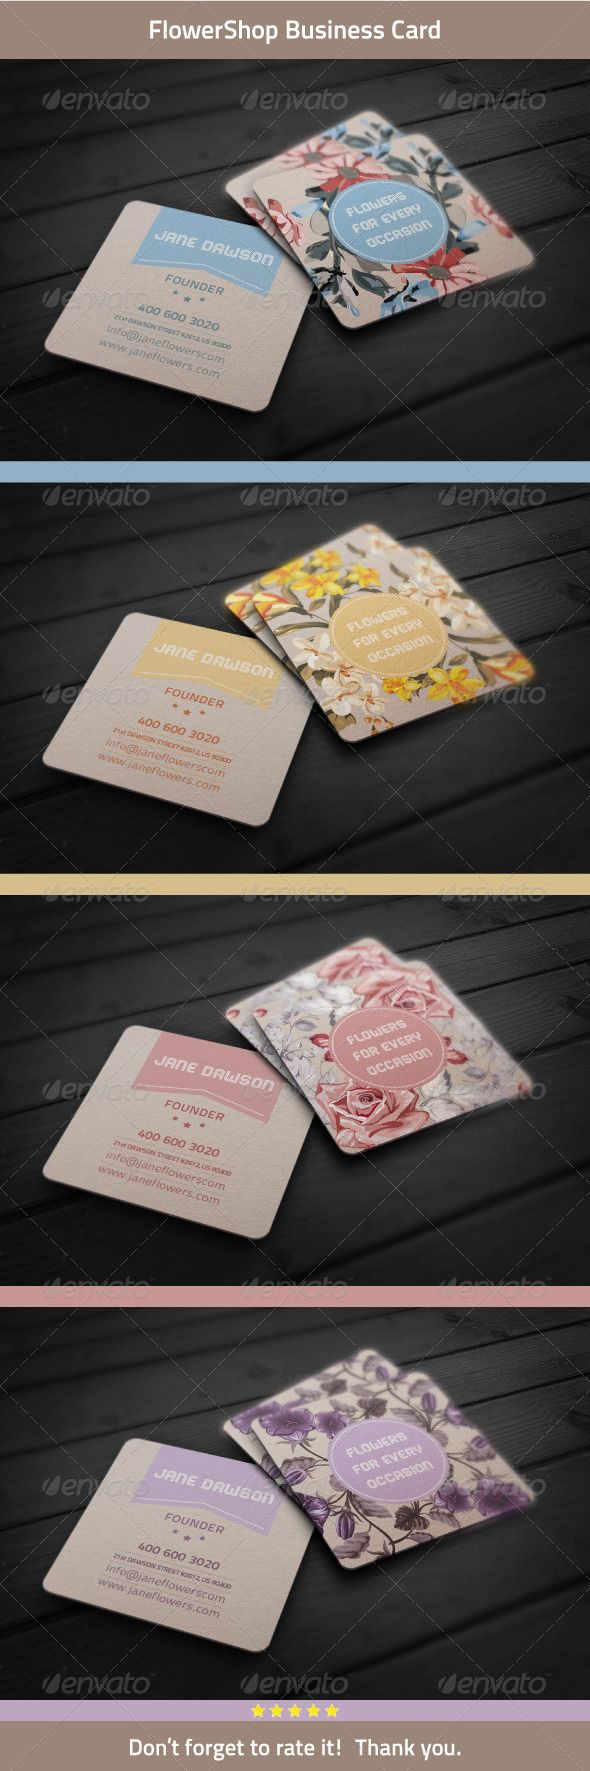 Best 25 square business cards ideas on pinterest business cards flower shop business card magicingreecefo Images